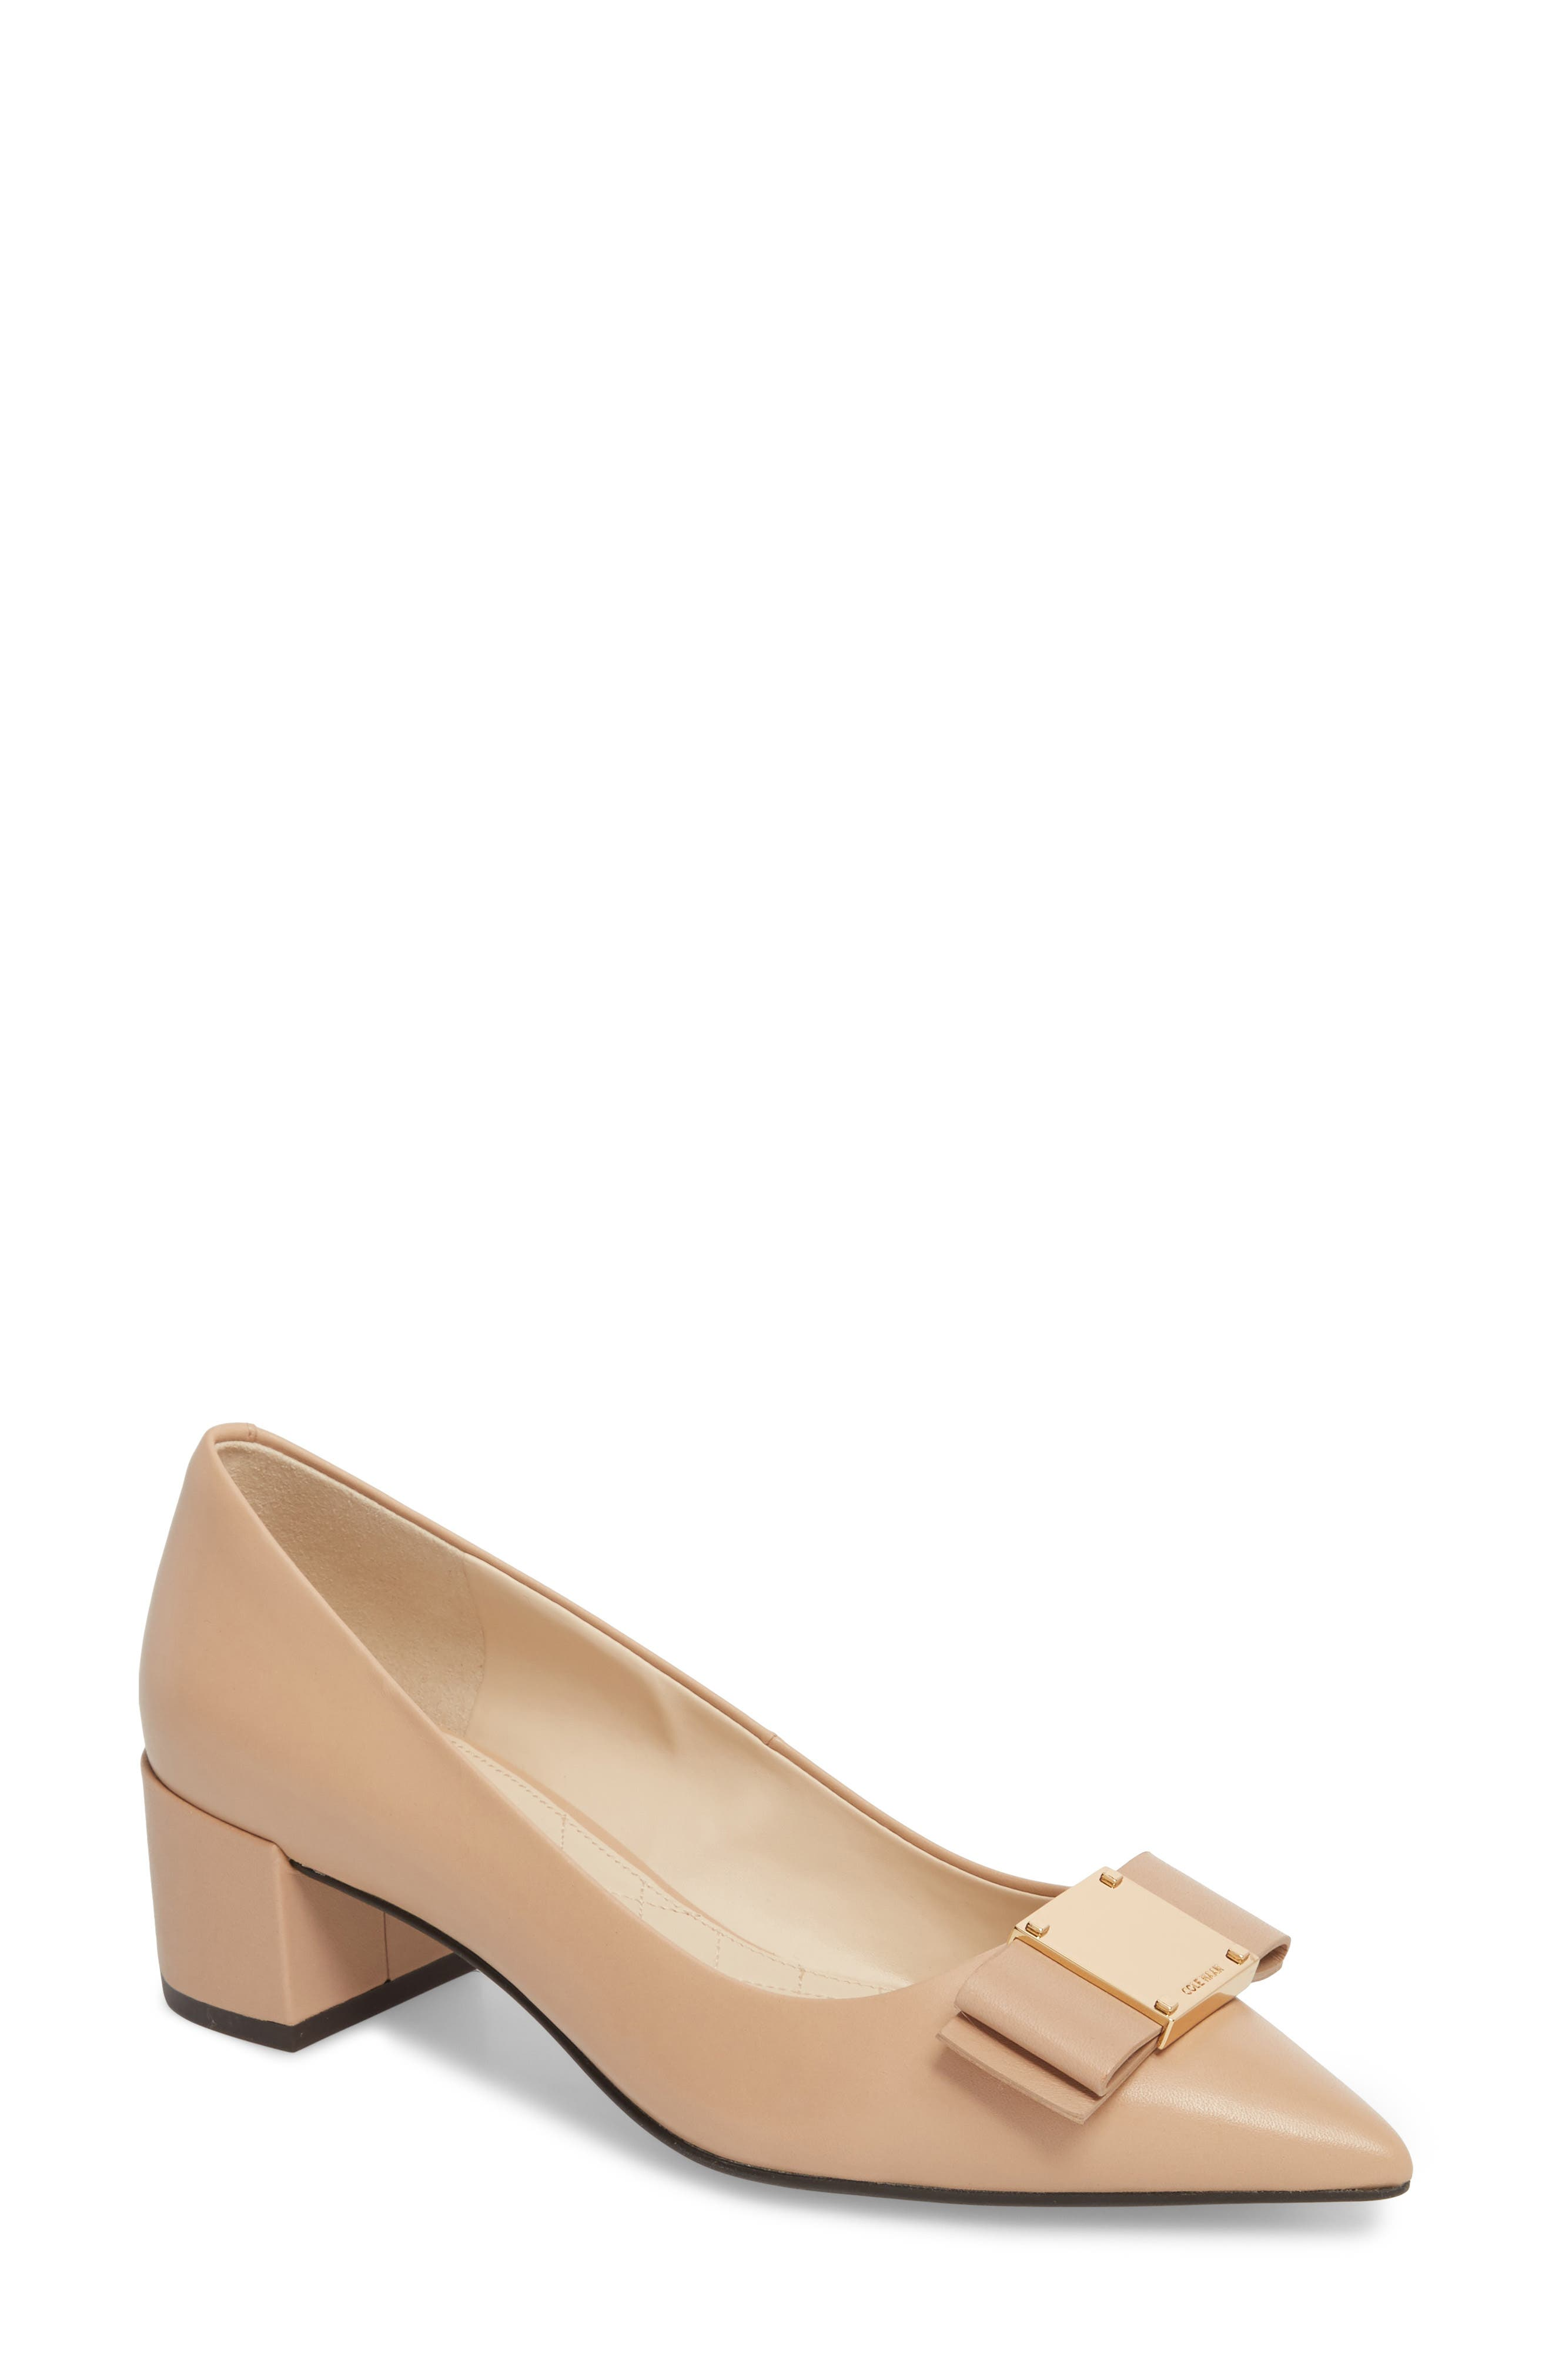 Tali Modern Waterproof Bow Pump,                         Main,                         color, NUDE LEATHER